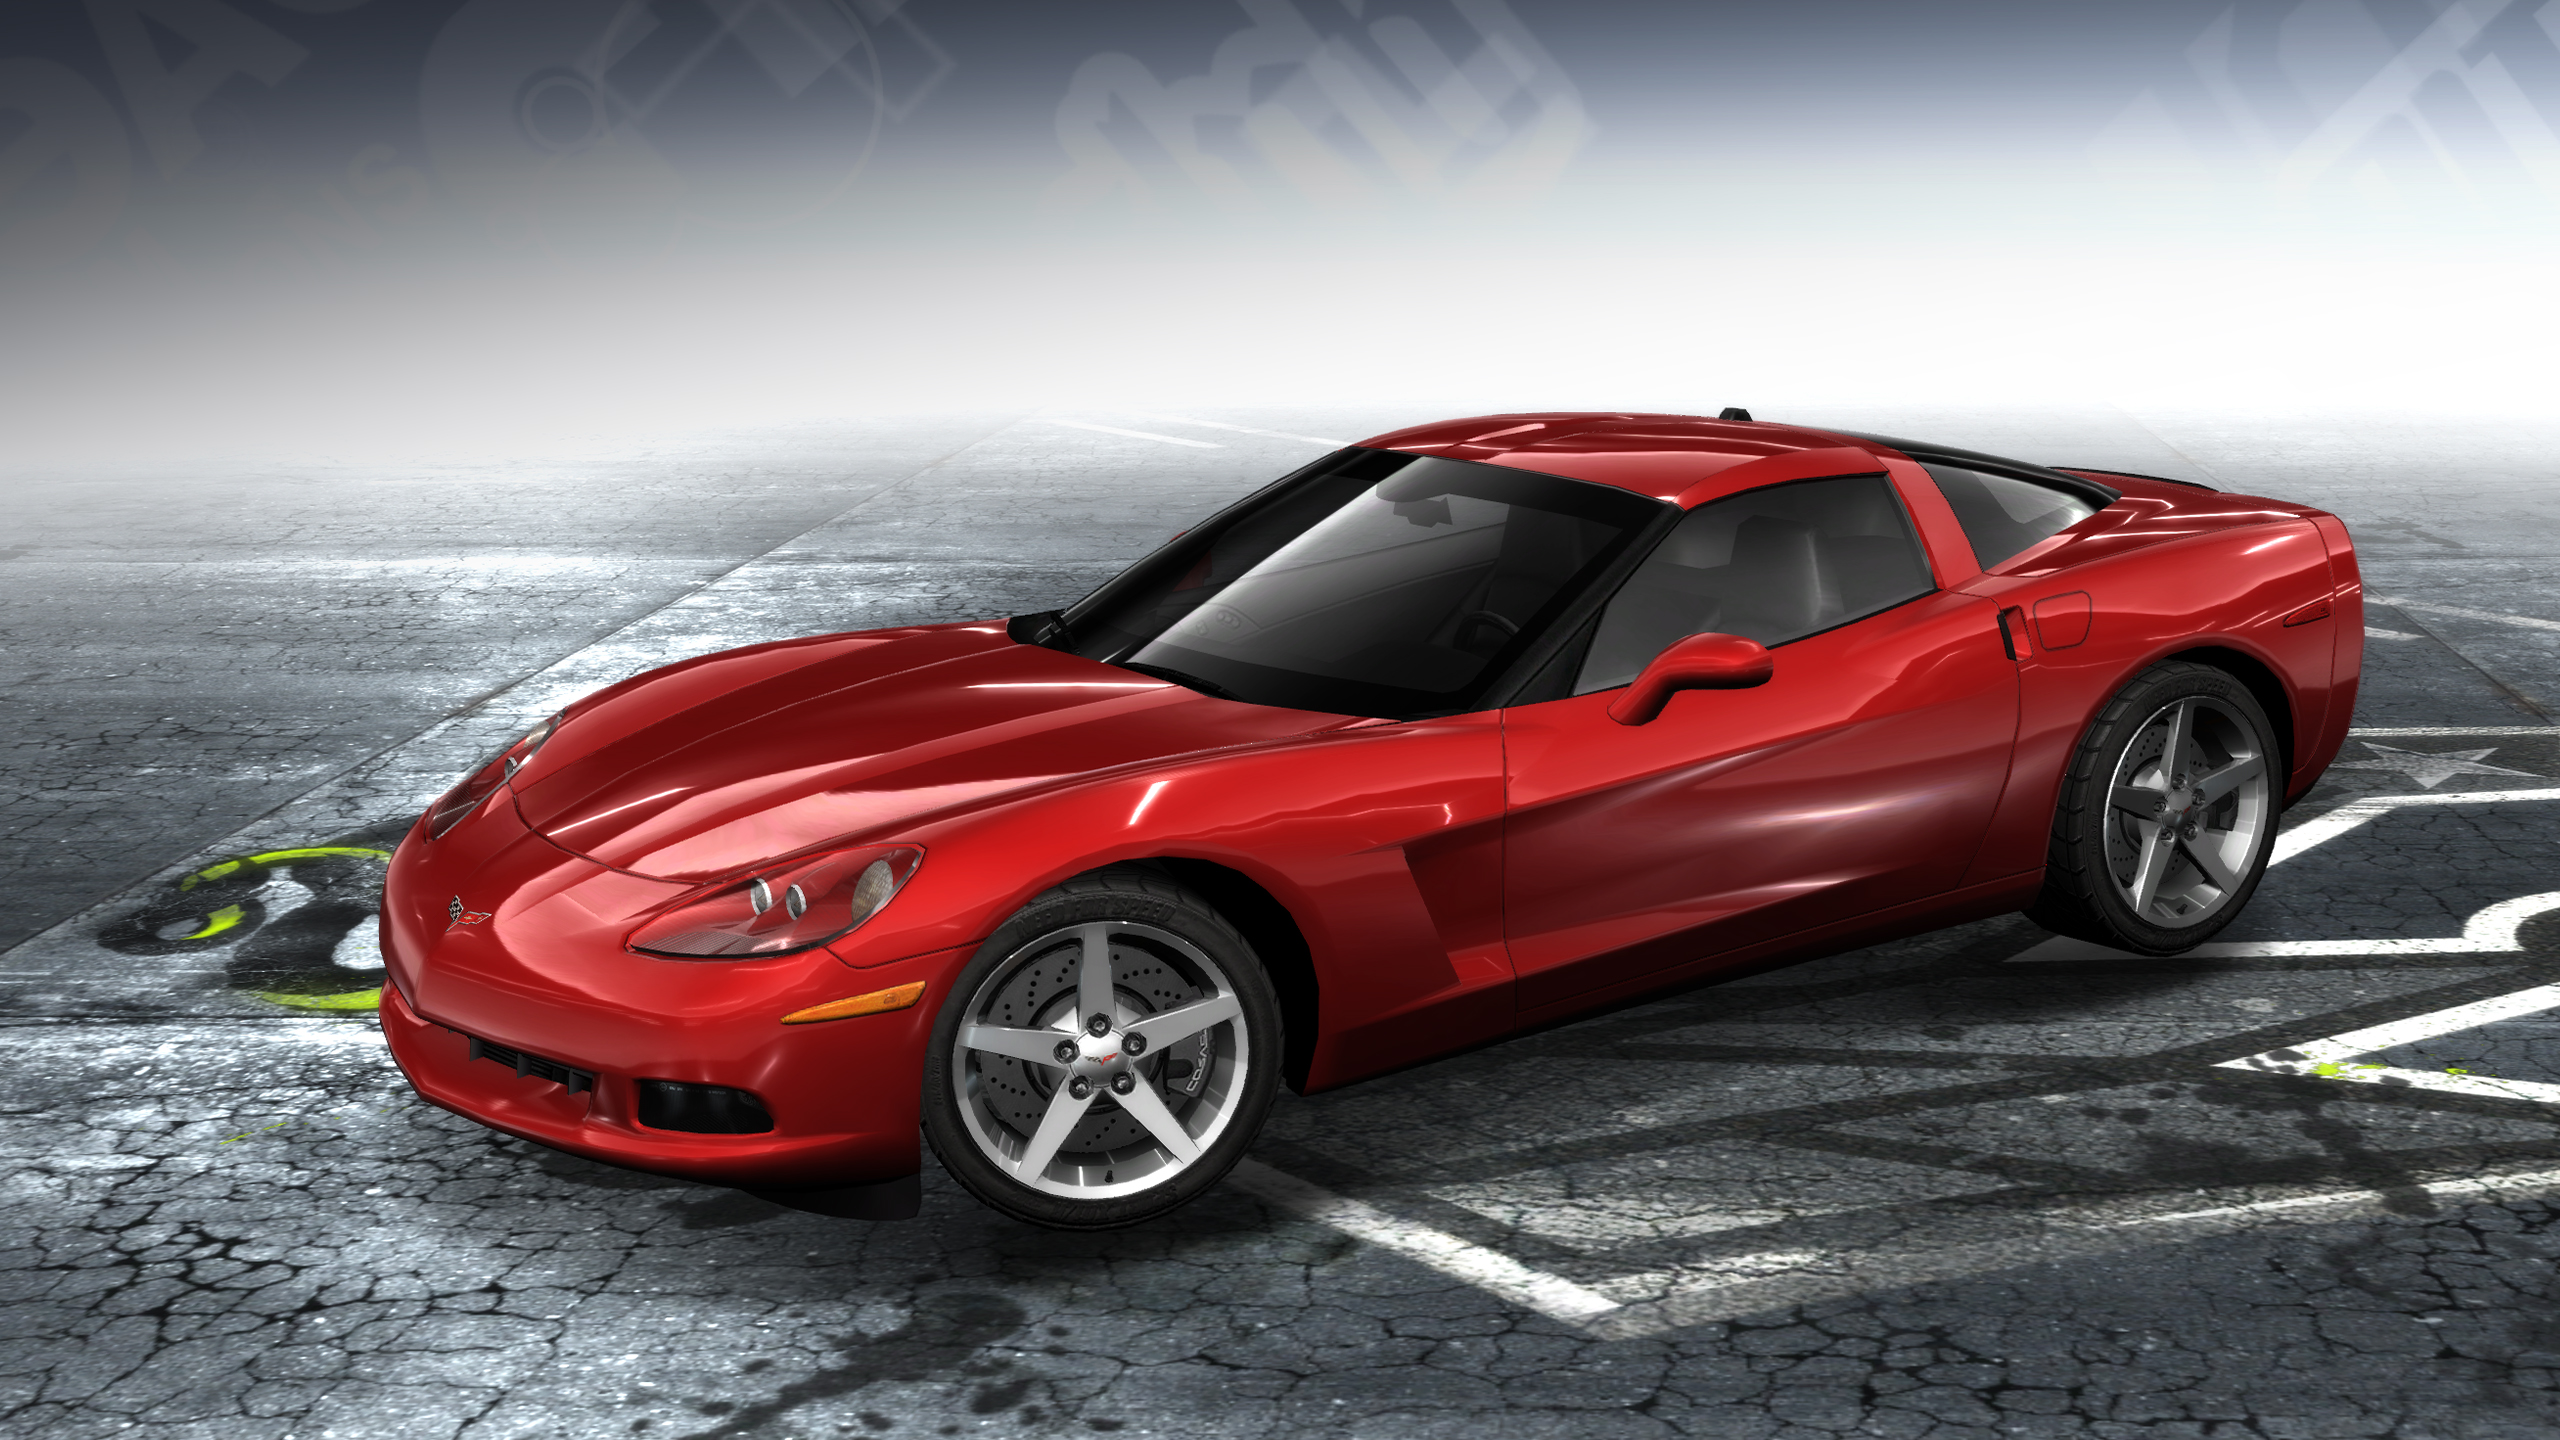 Chevrolet Corvette (C6) | Need for Speed Wiki | FANDOM powered by Wikia